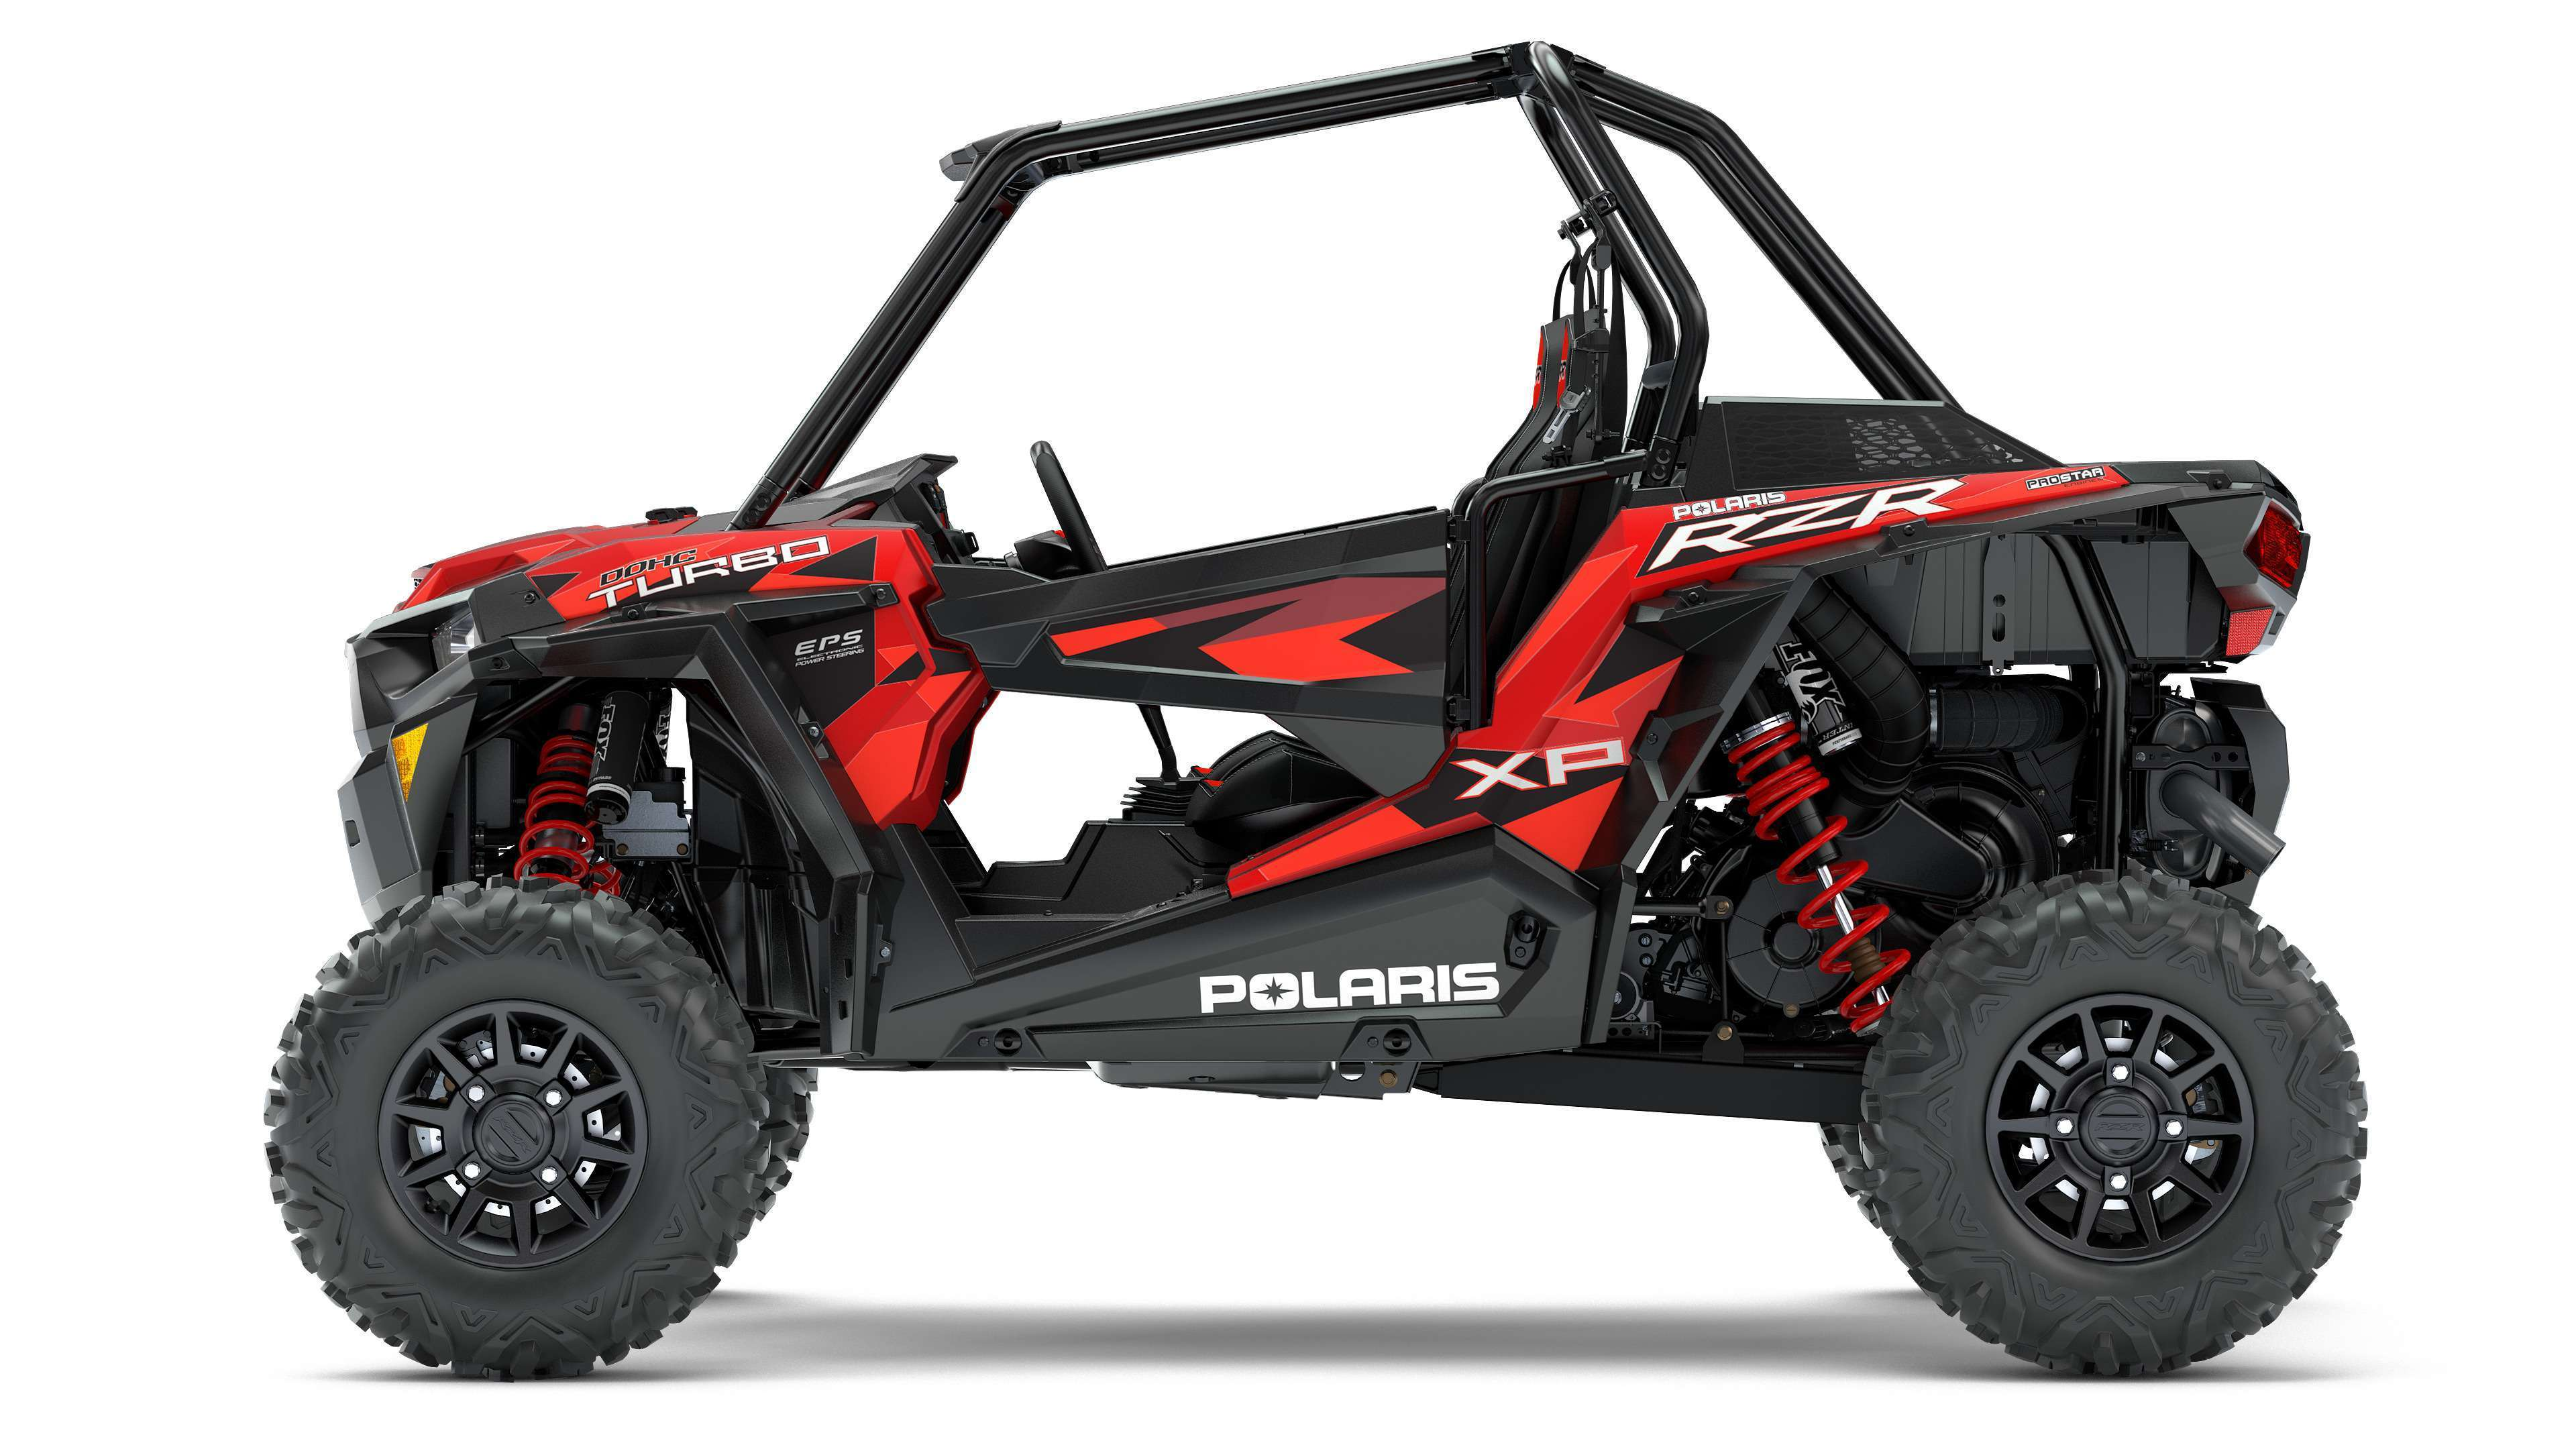 Concessionnaire de Side by Sides, RZR Polaris